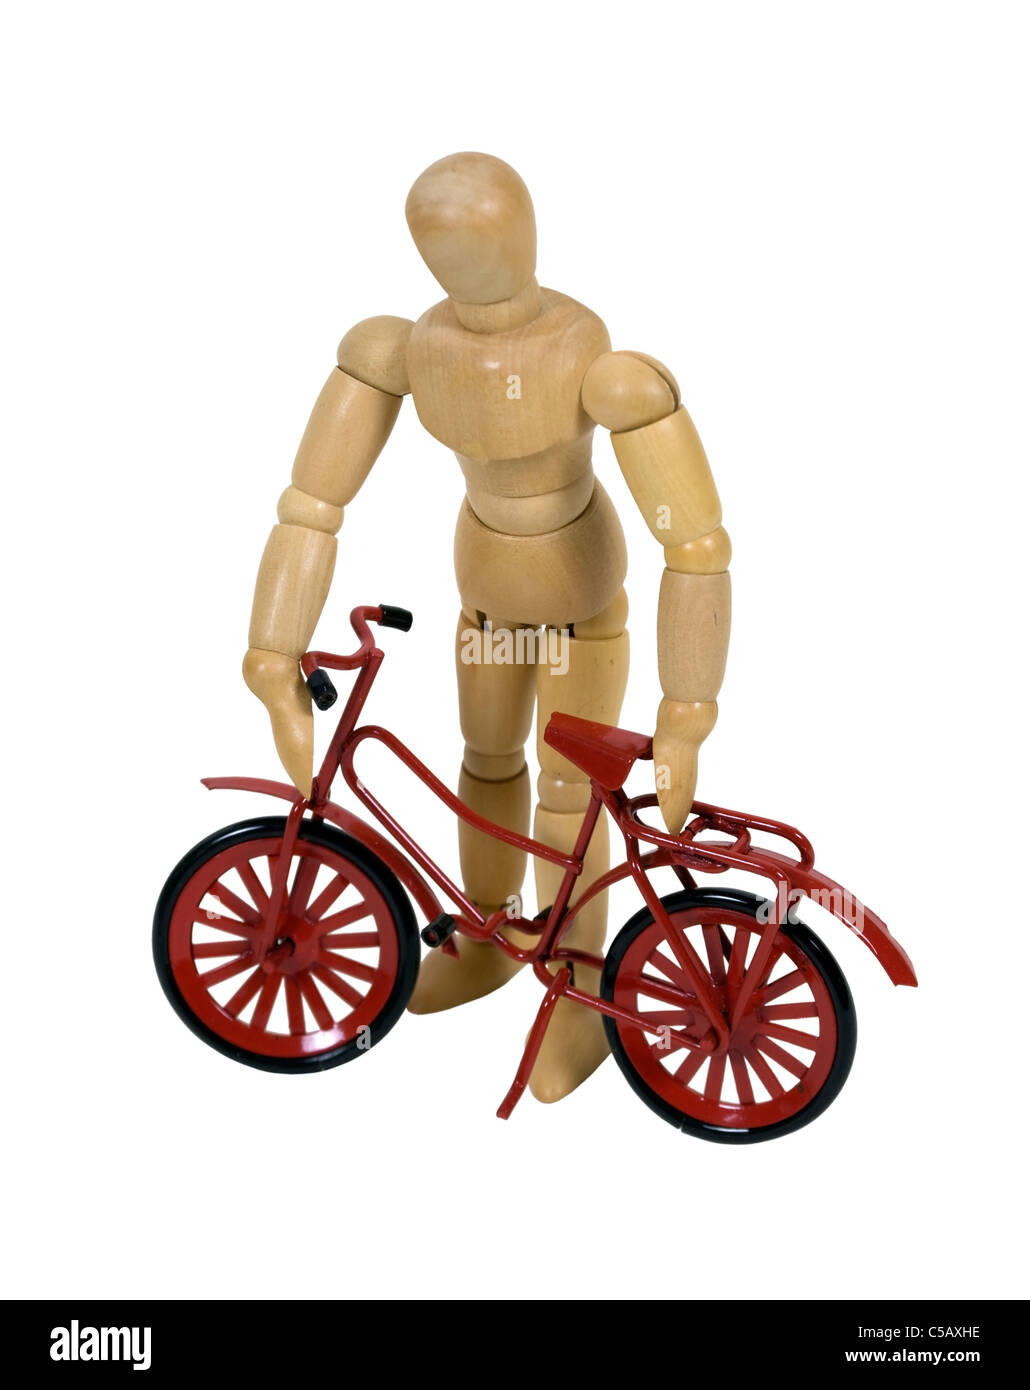 Model holding a new red bicycle which is ready to be ridden - path included - Stock Image